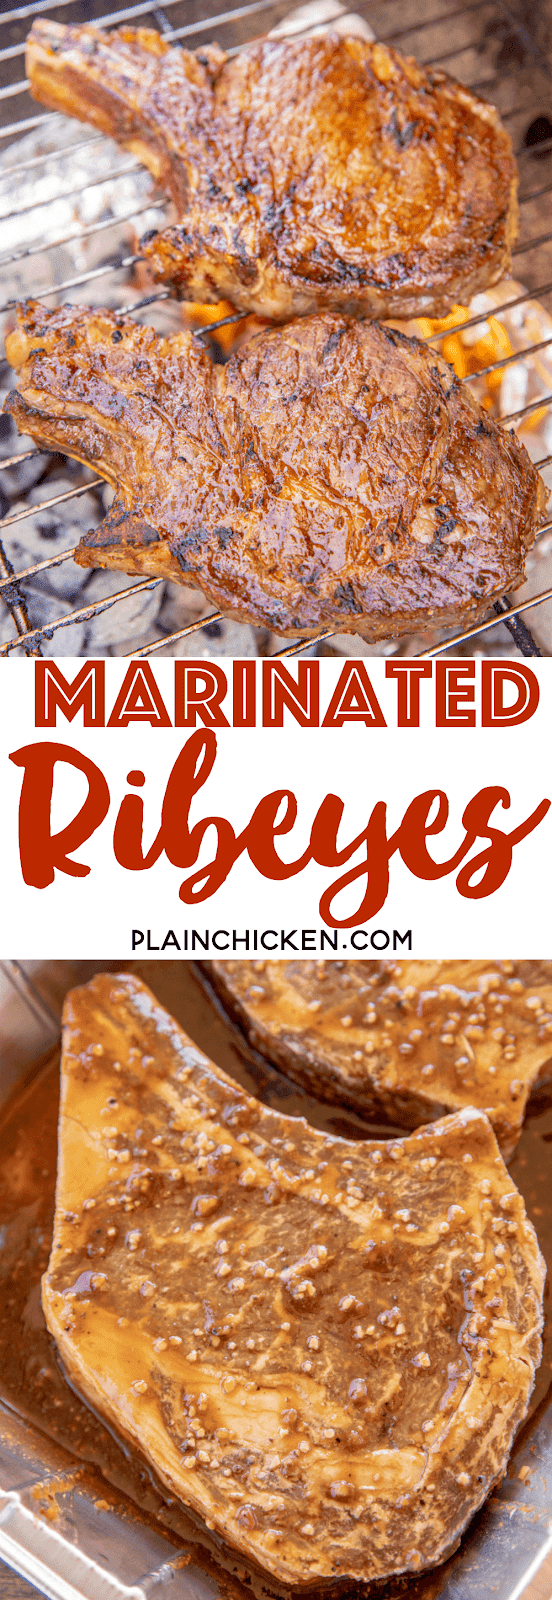 Marinated Ribeyes - the most flavorful steaks we've ever eaten!!! Marinate the ribeyes in a mixture of BBQ sauce, Worcestershire sauce, steak sauce, red wine vinegar, soy sauce, steak seasoning, hot sauce, pepper and garlic. Marinate a few hours to overnight. These steaks were better than any restaurant! YUM! #grill #ribeye #steak #marinade #steakmarinade #grilling